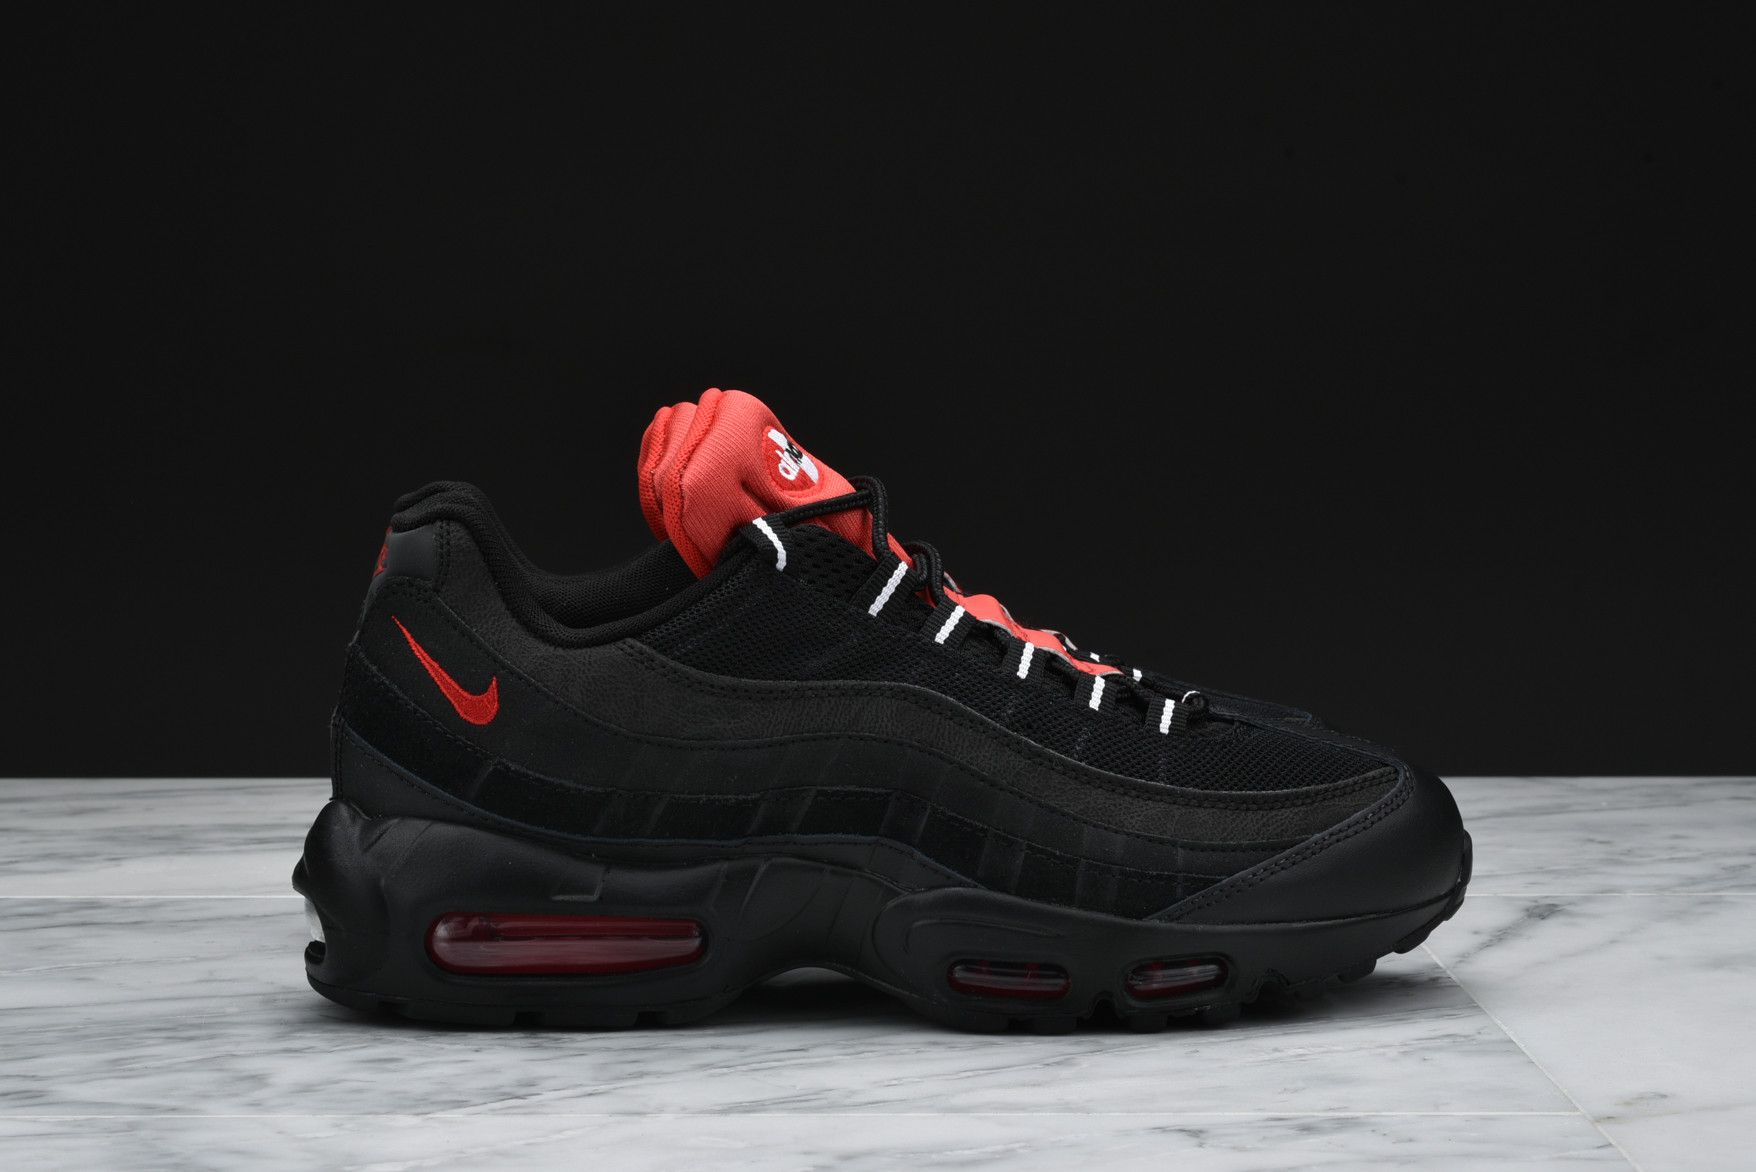 Details about Size 10 Nike Men Air Max 95 Essential Sneakers 749766 016 Black Red